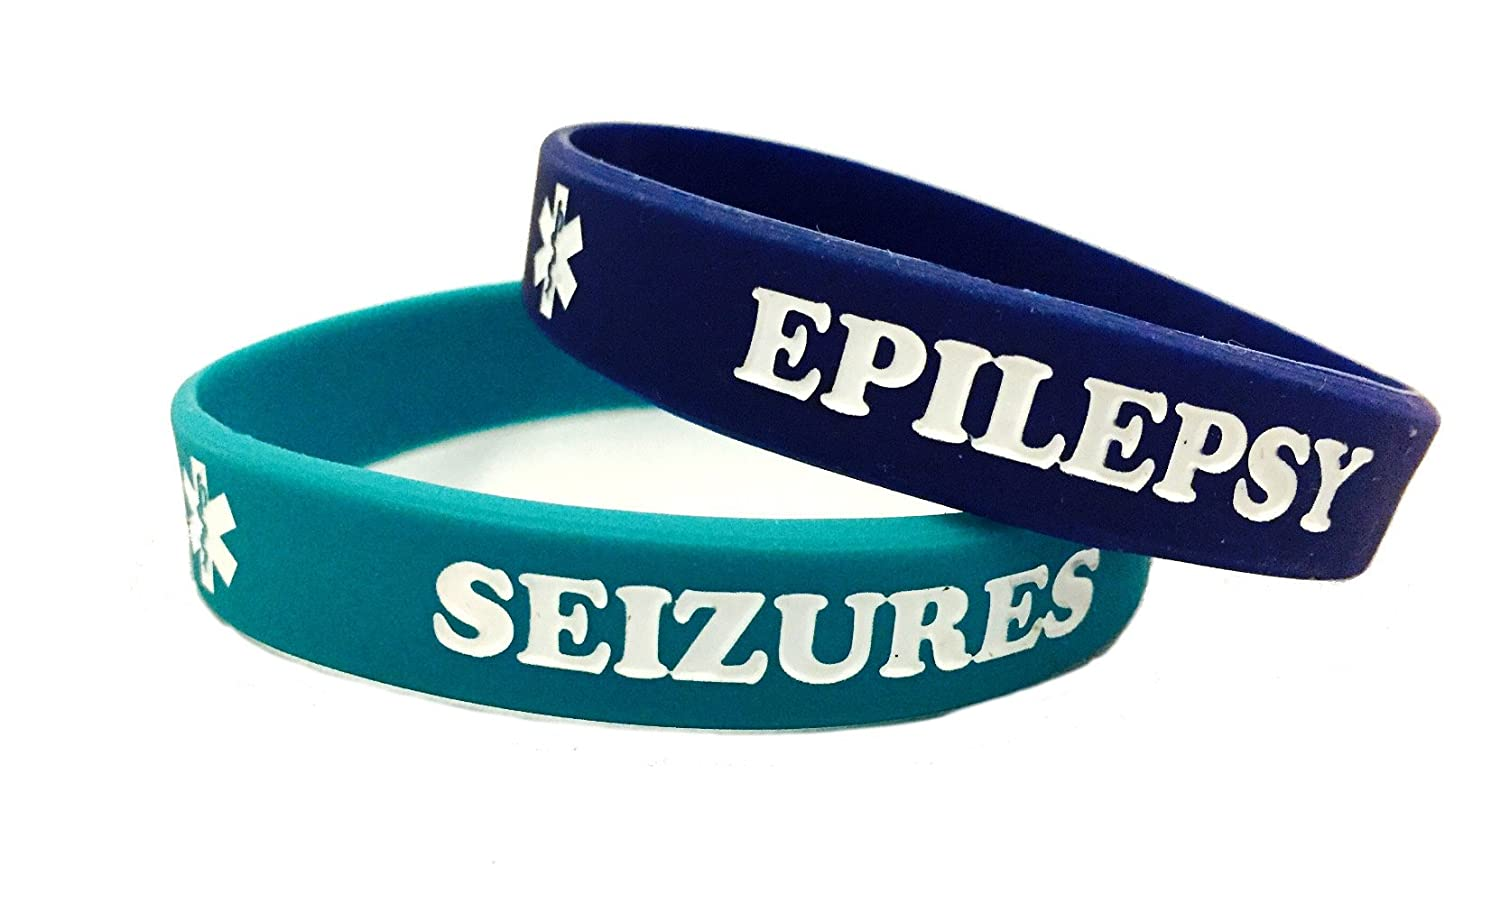 blue purple collections red free symbol with medical bracelets black autistic pack seizure combo tool baaa alert wristbands customize our wb id green bracelet design